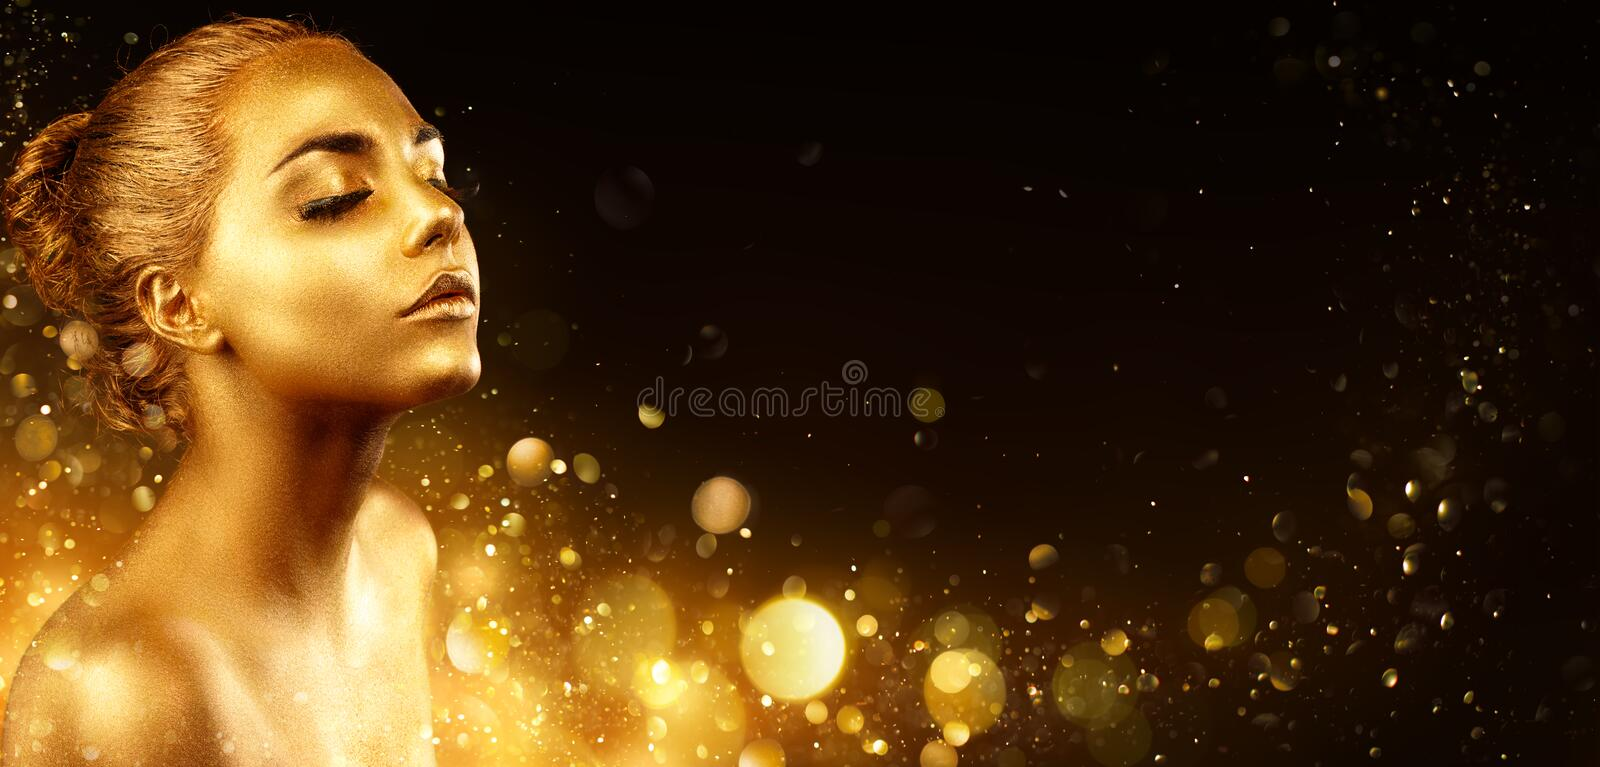 Goldenes Make-up - Mode-Modell-Portrait With Gold-Haut und Funkeln lizenzfreies stockbild